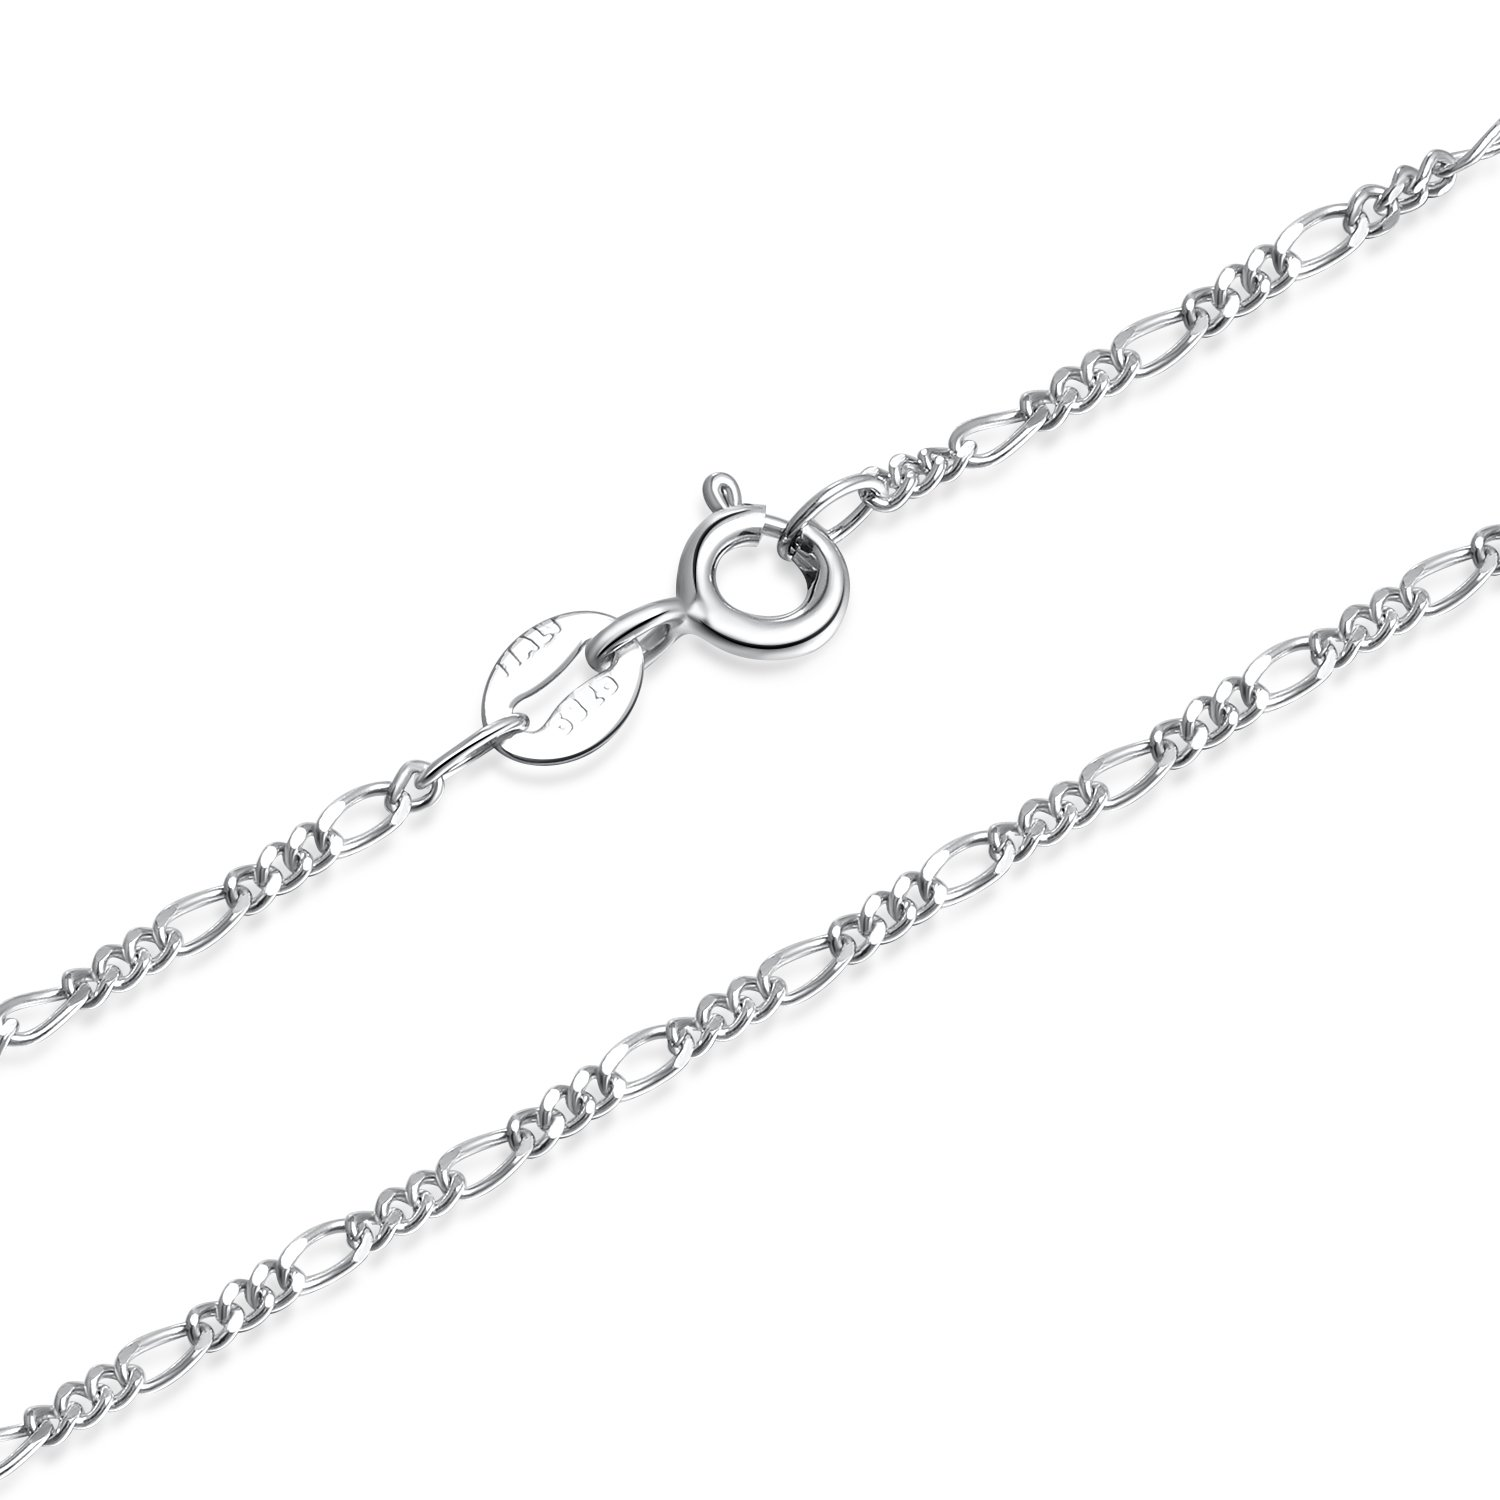 1.5mm 925 Sterling Silver Italian Figaro Chain Necklace 14-30 inch Women Girls Silbertale SN011